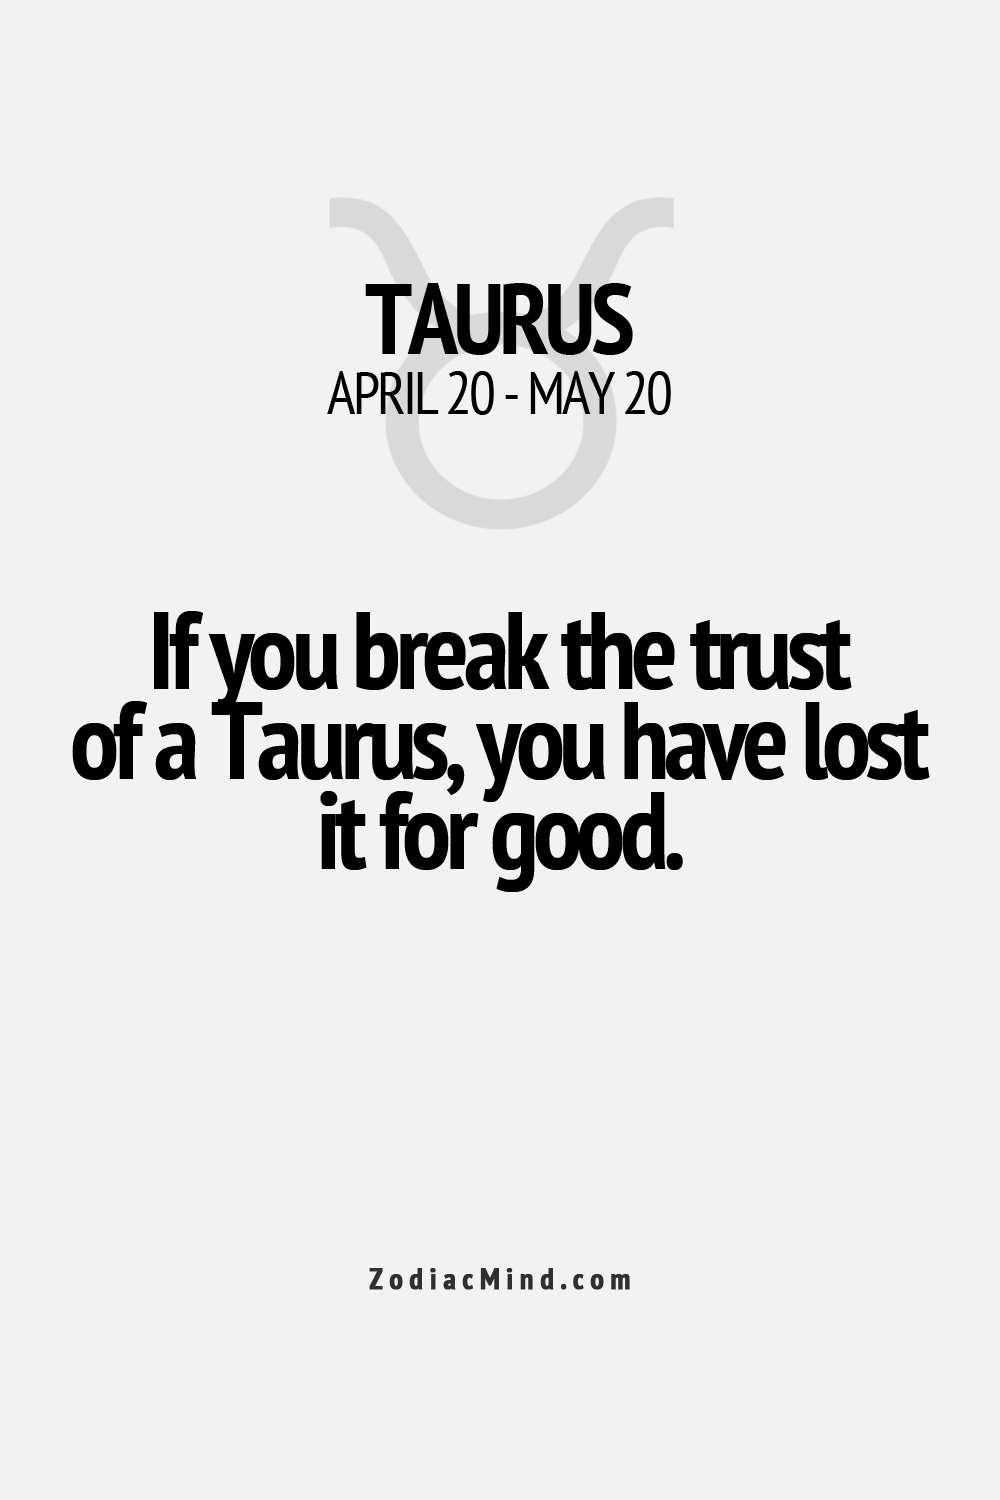 If you break the trust of a Taurus, you have lost it for good. Zodiac sign Taurus.